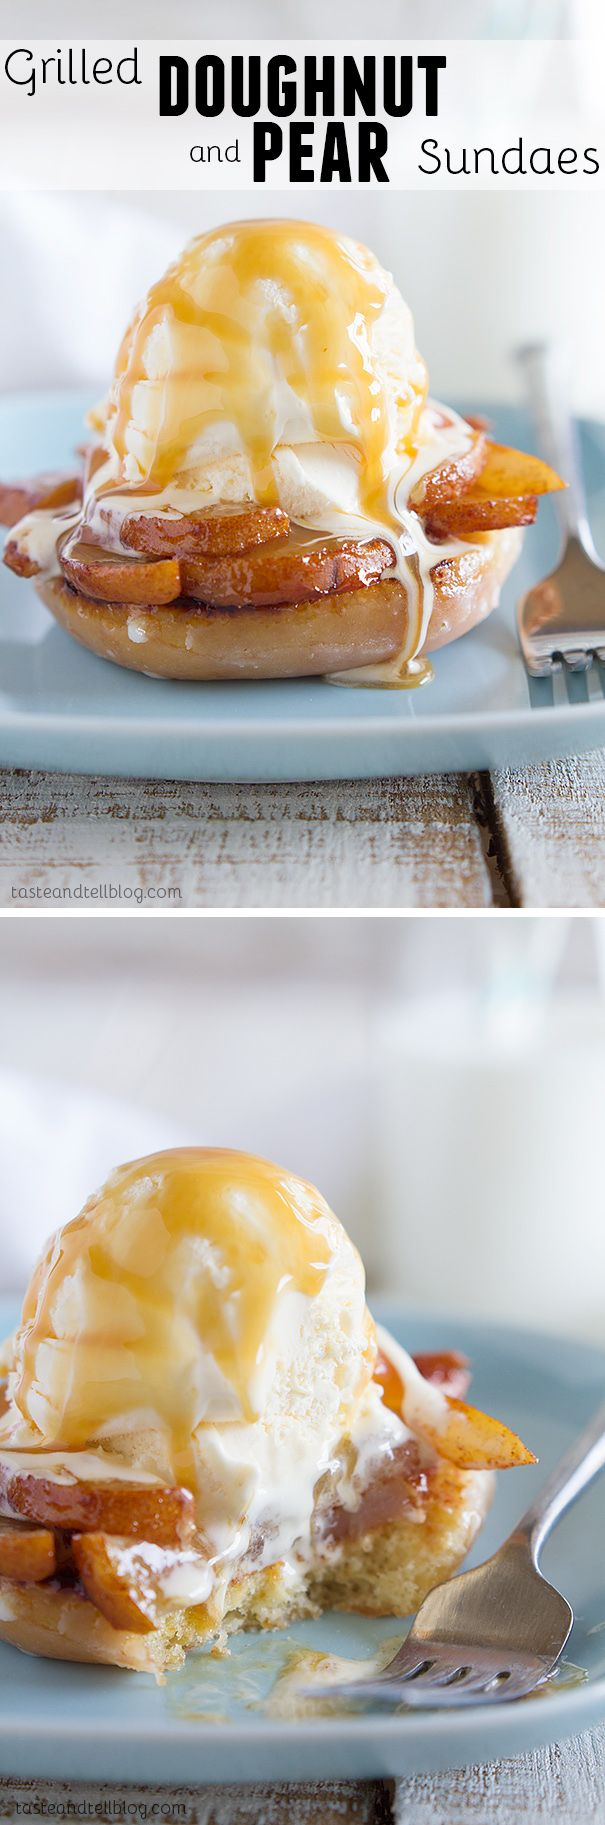 Grilled Doughnut and Pear Recipe - This sundae recipe has glazed doughnuts lightly grilled then topped with cinnamon sugar coated grilled pears, vanilla ice cream and caramel sauce.